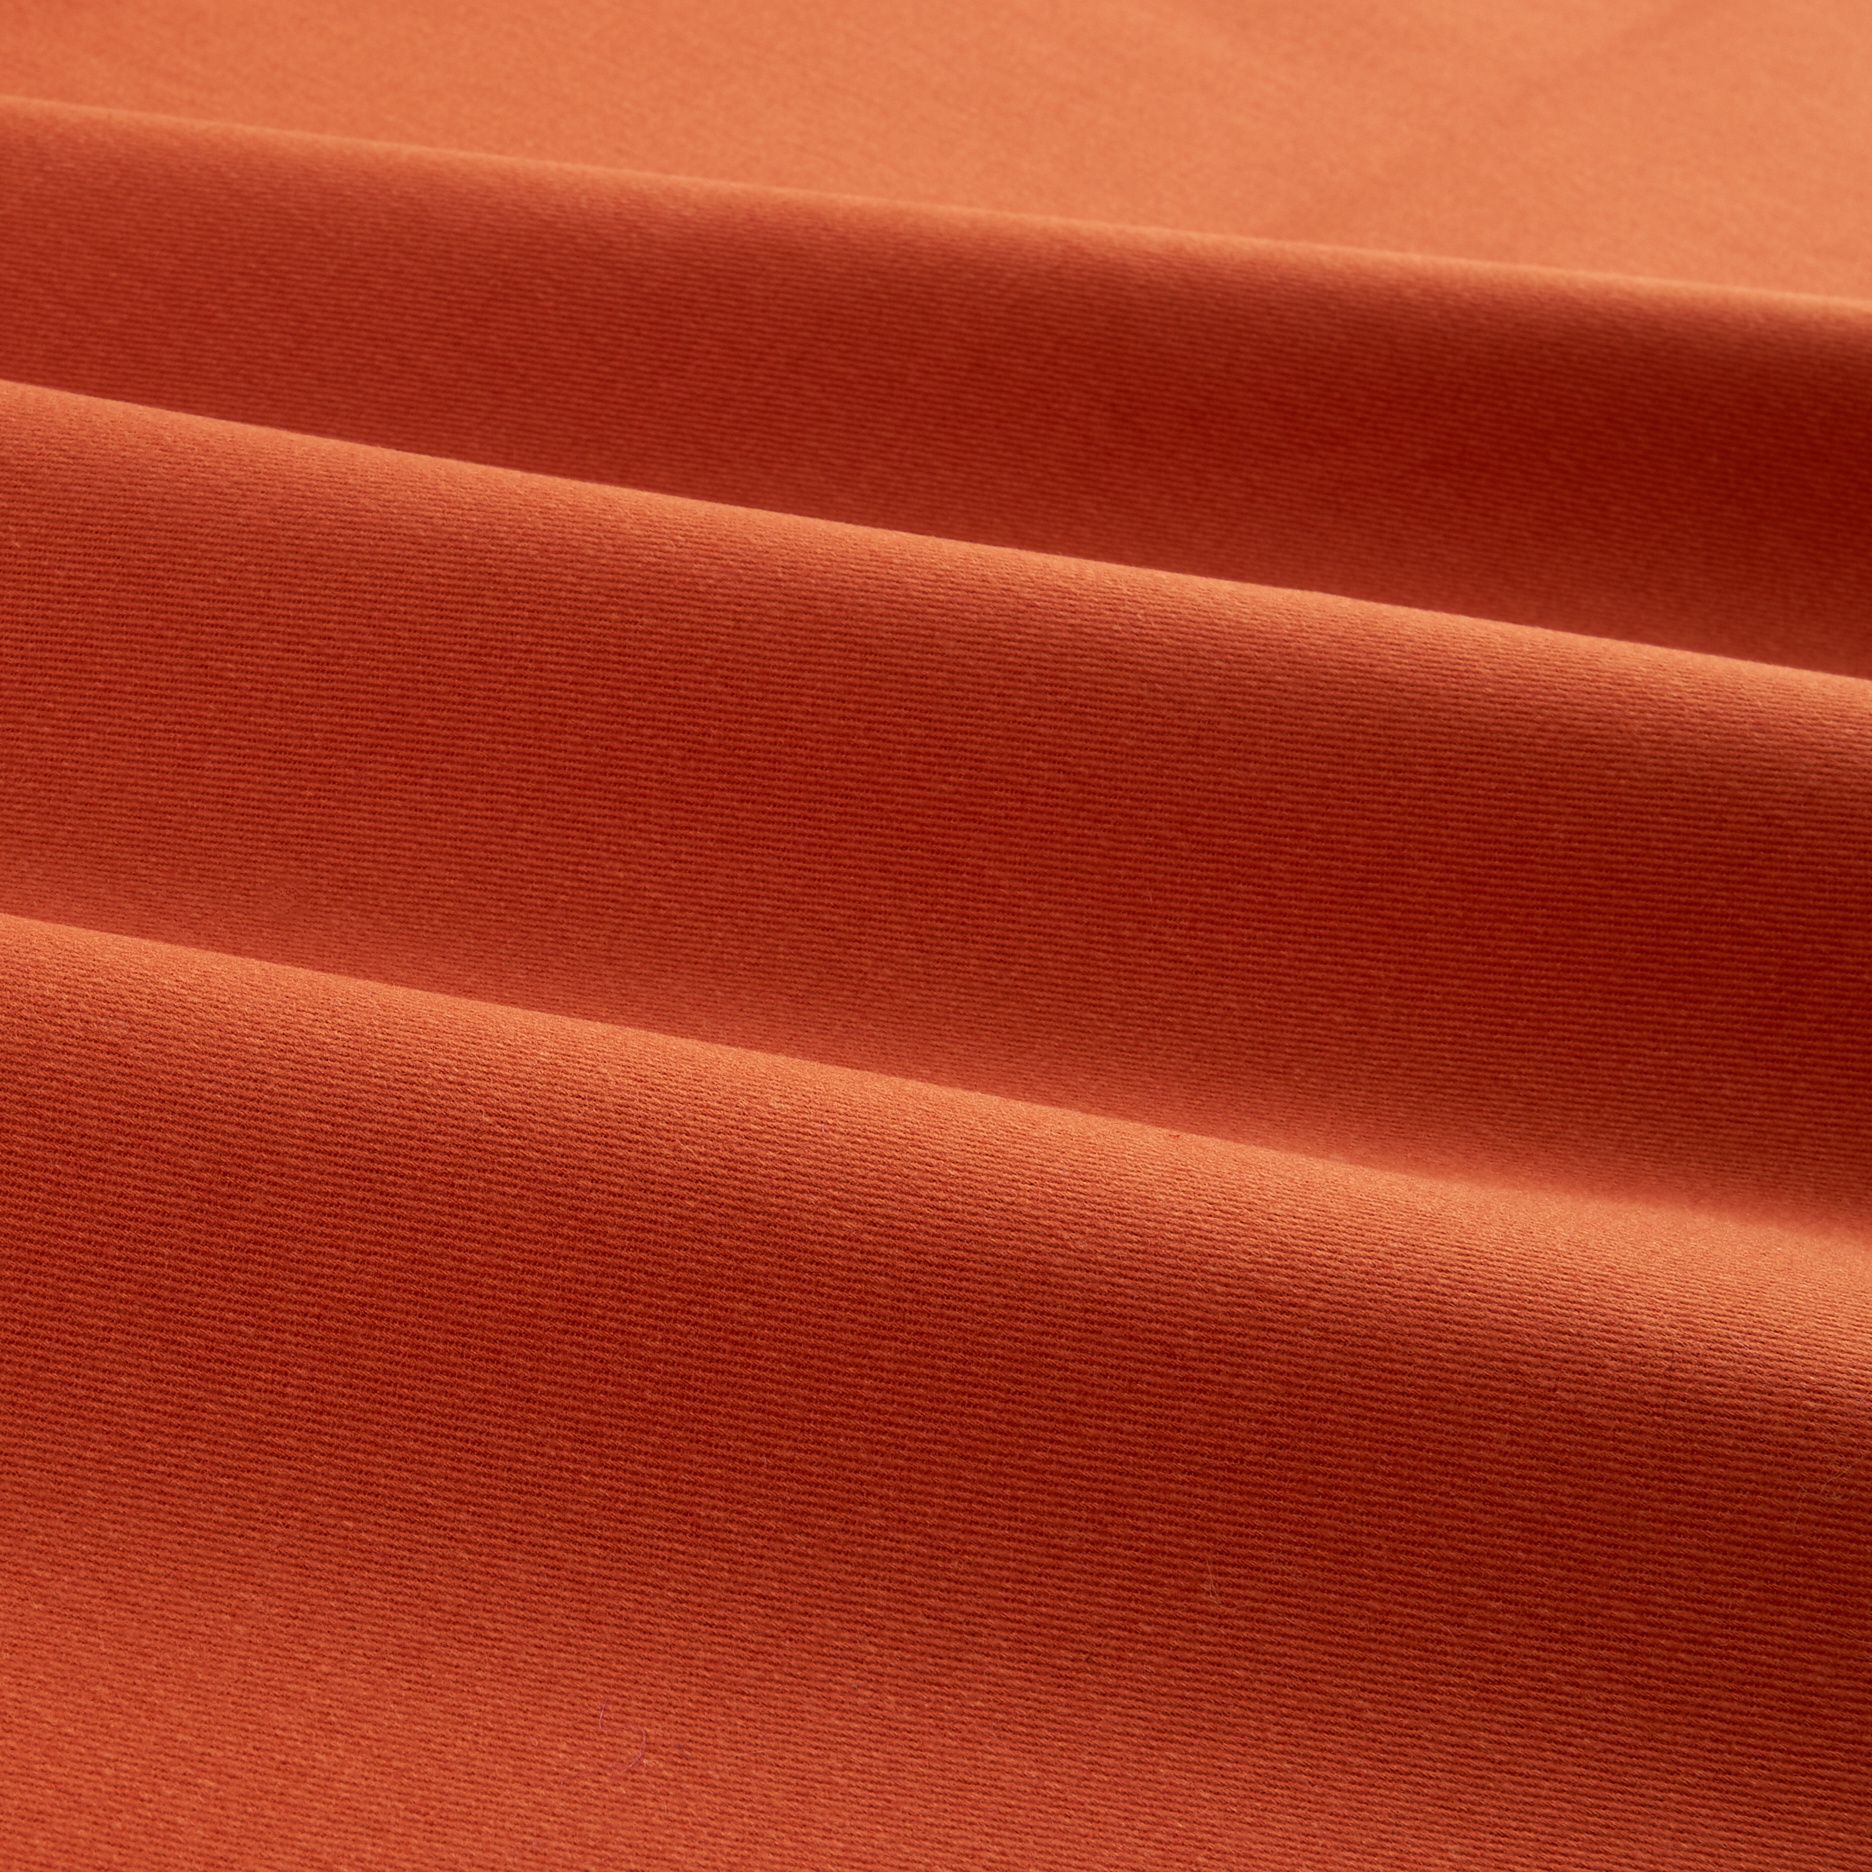 Sanded/Brushed Twill Sweet Potato Fabric by Carr in USA